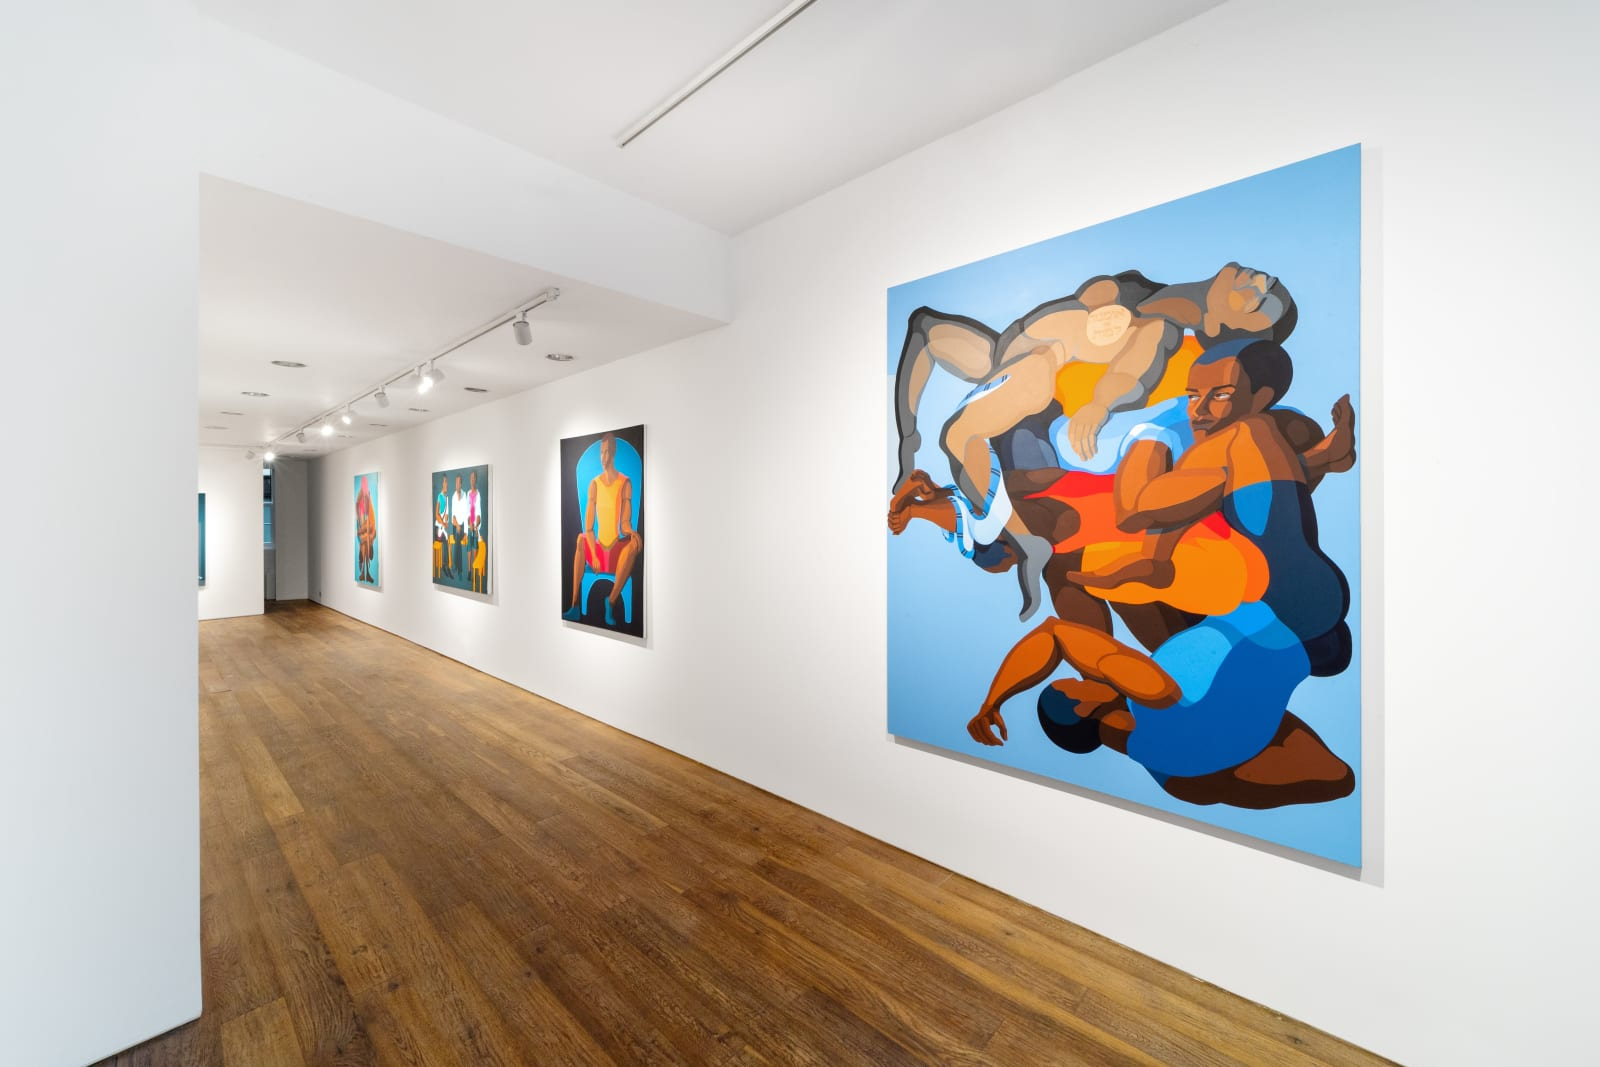 Installation View of The Space Between Us. Courtesy of Lucy Emms.